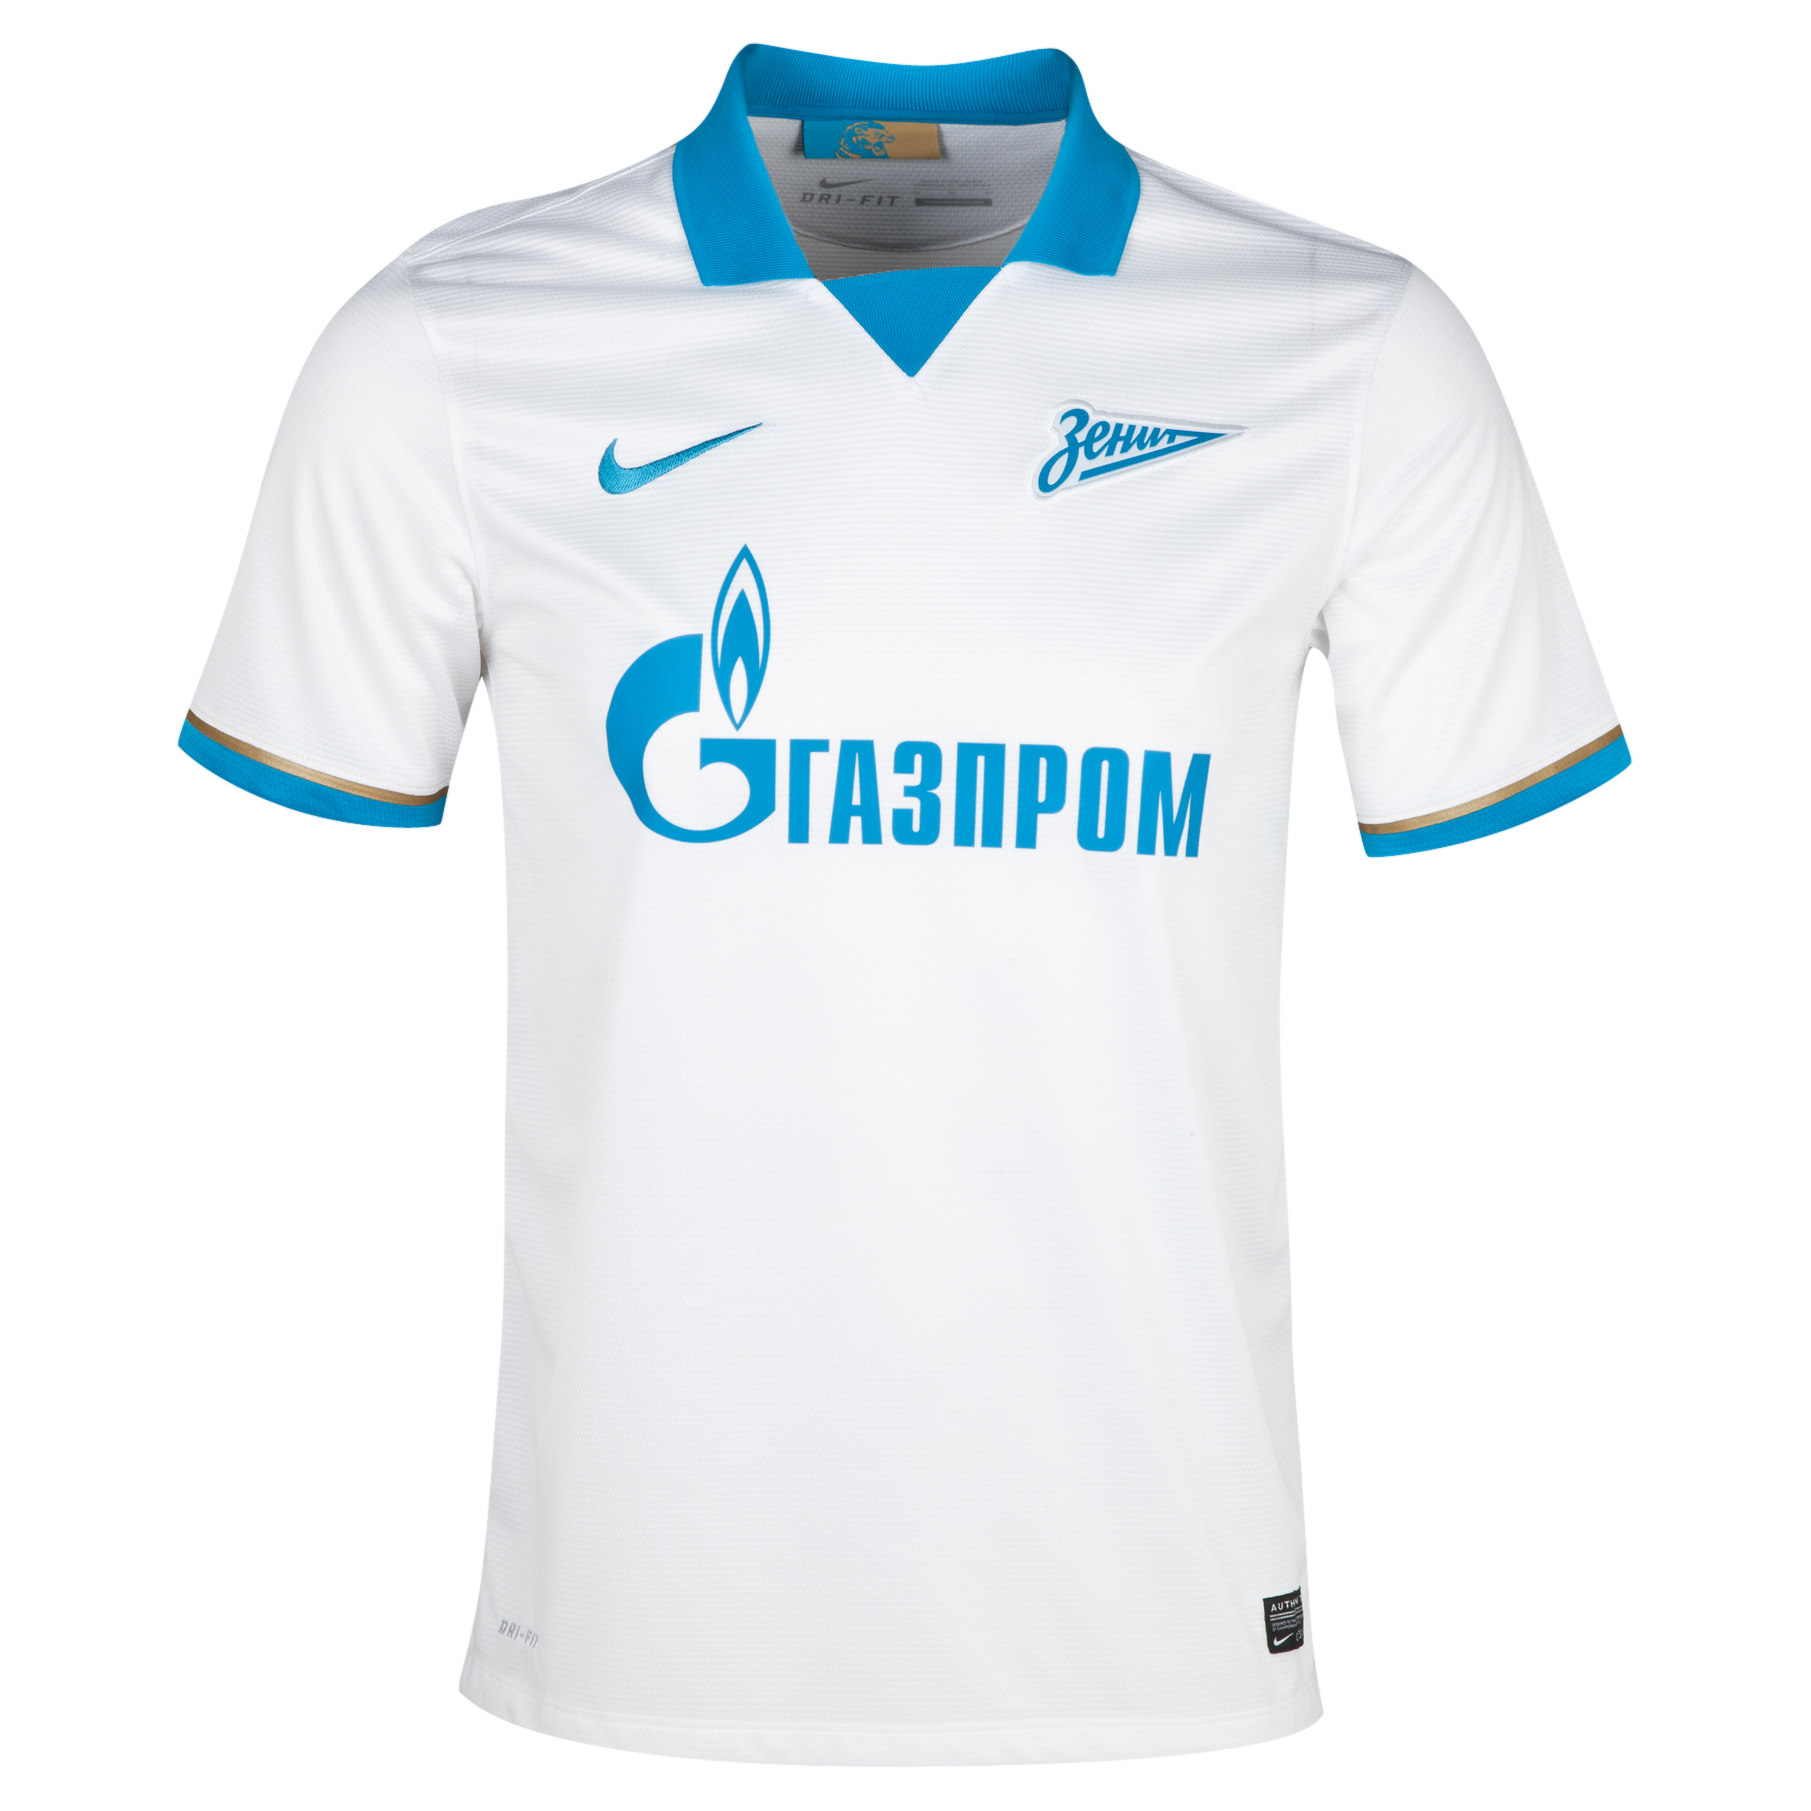 Zenit St. Petersberg Away Shirt 2013/14